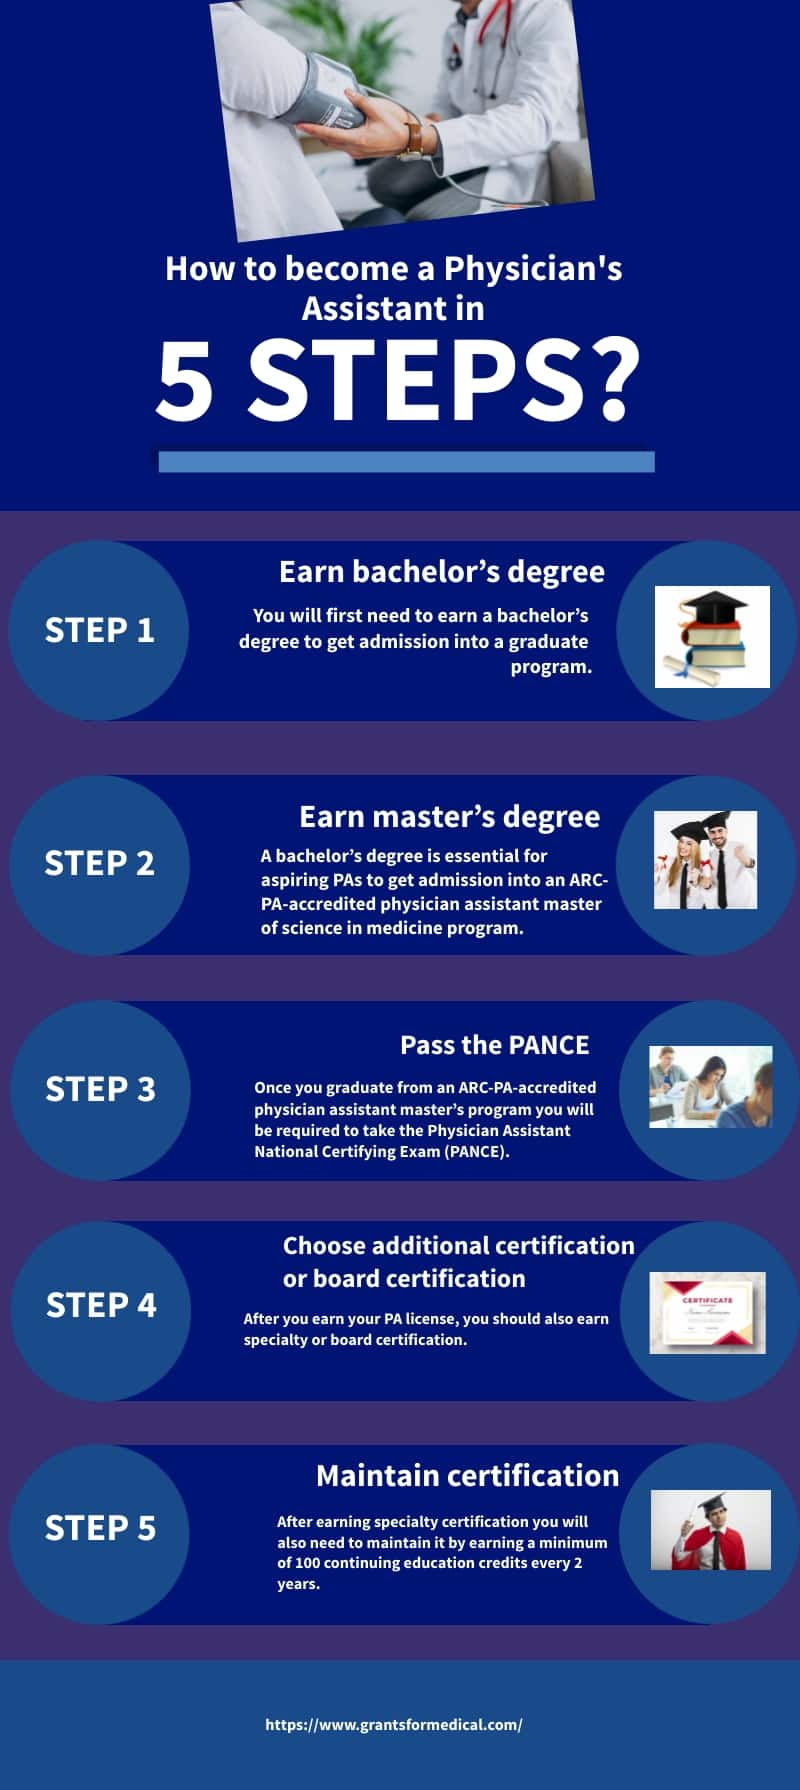 How to become a Physician's Assistant - infographic - infographic